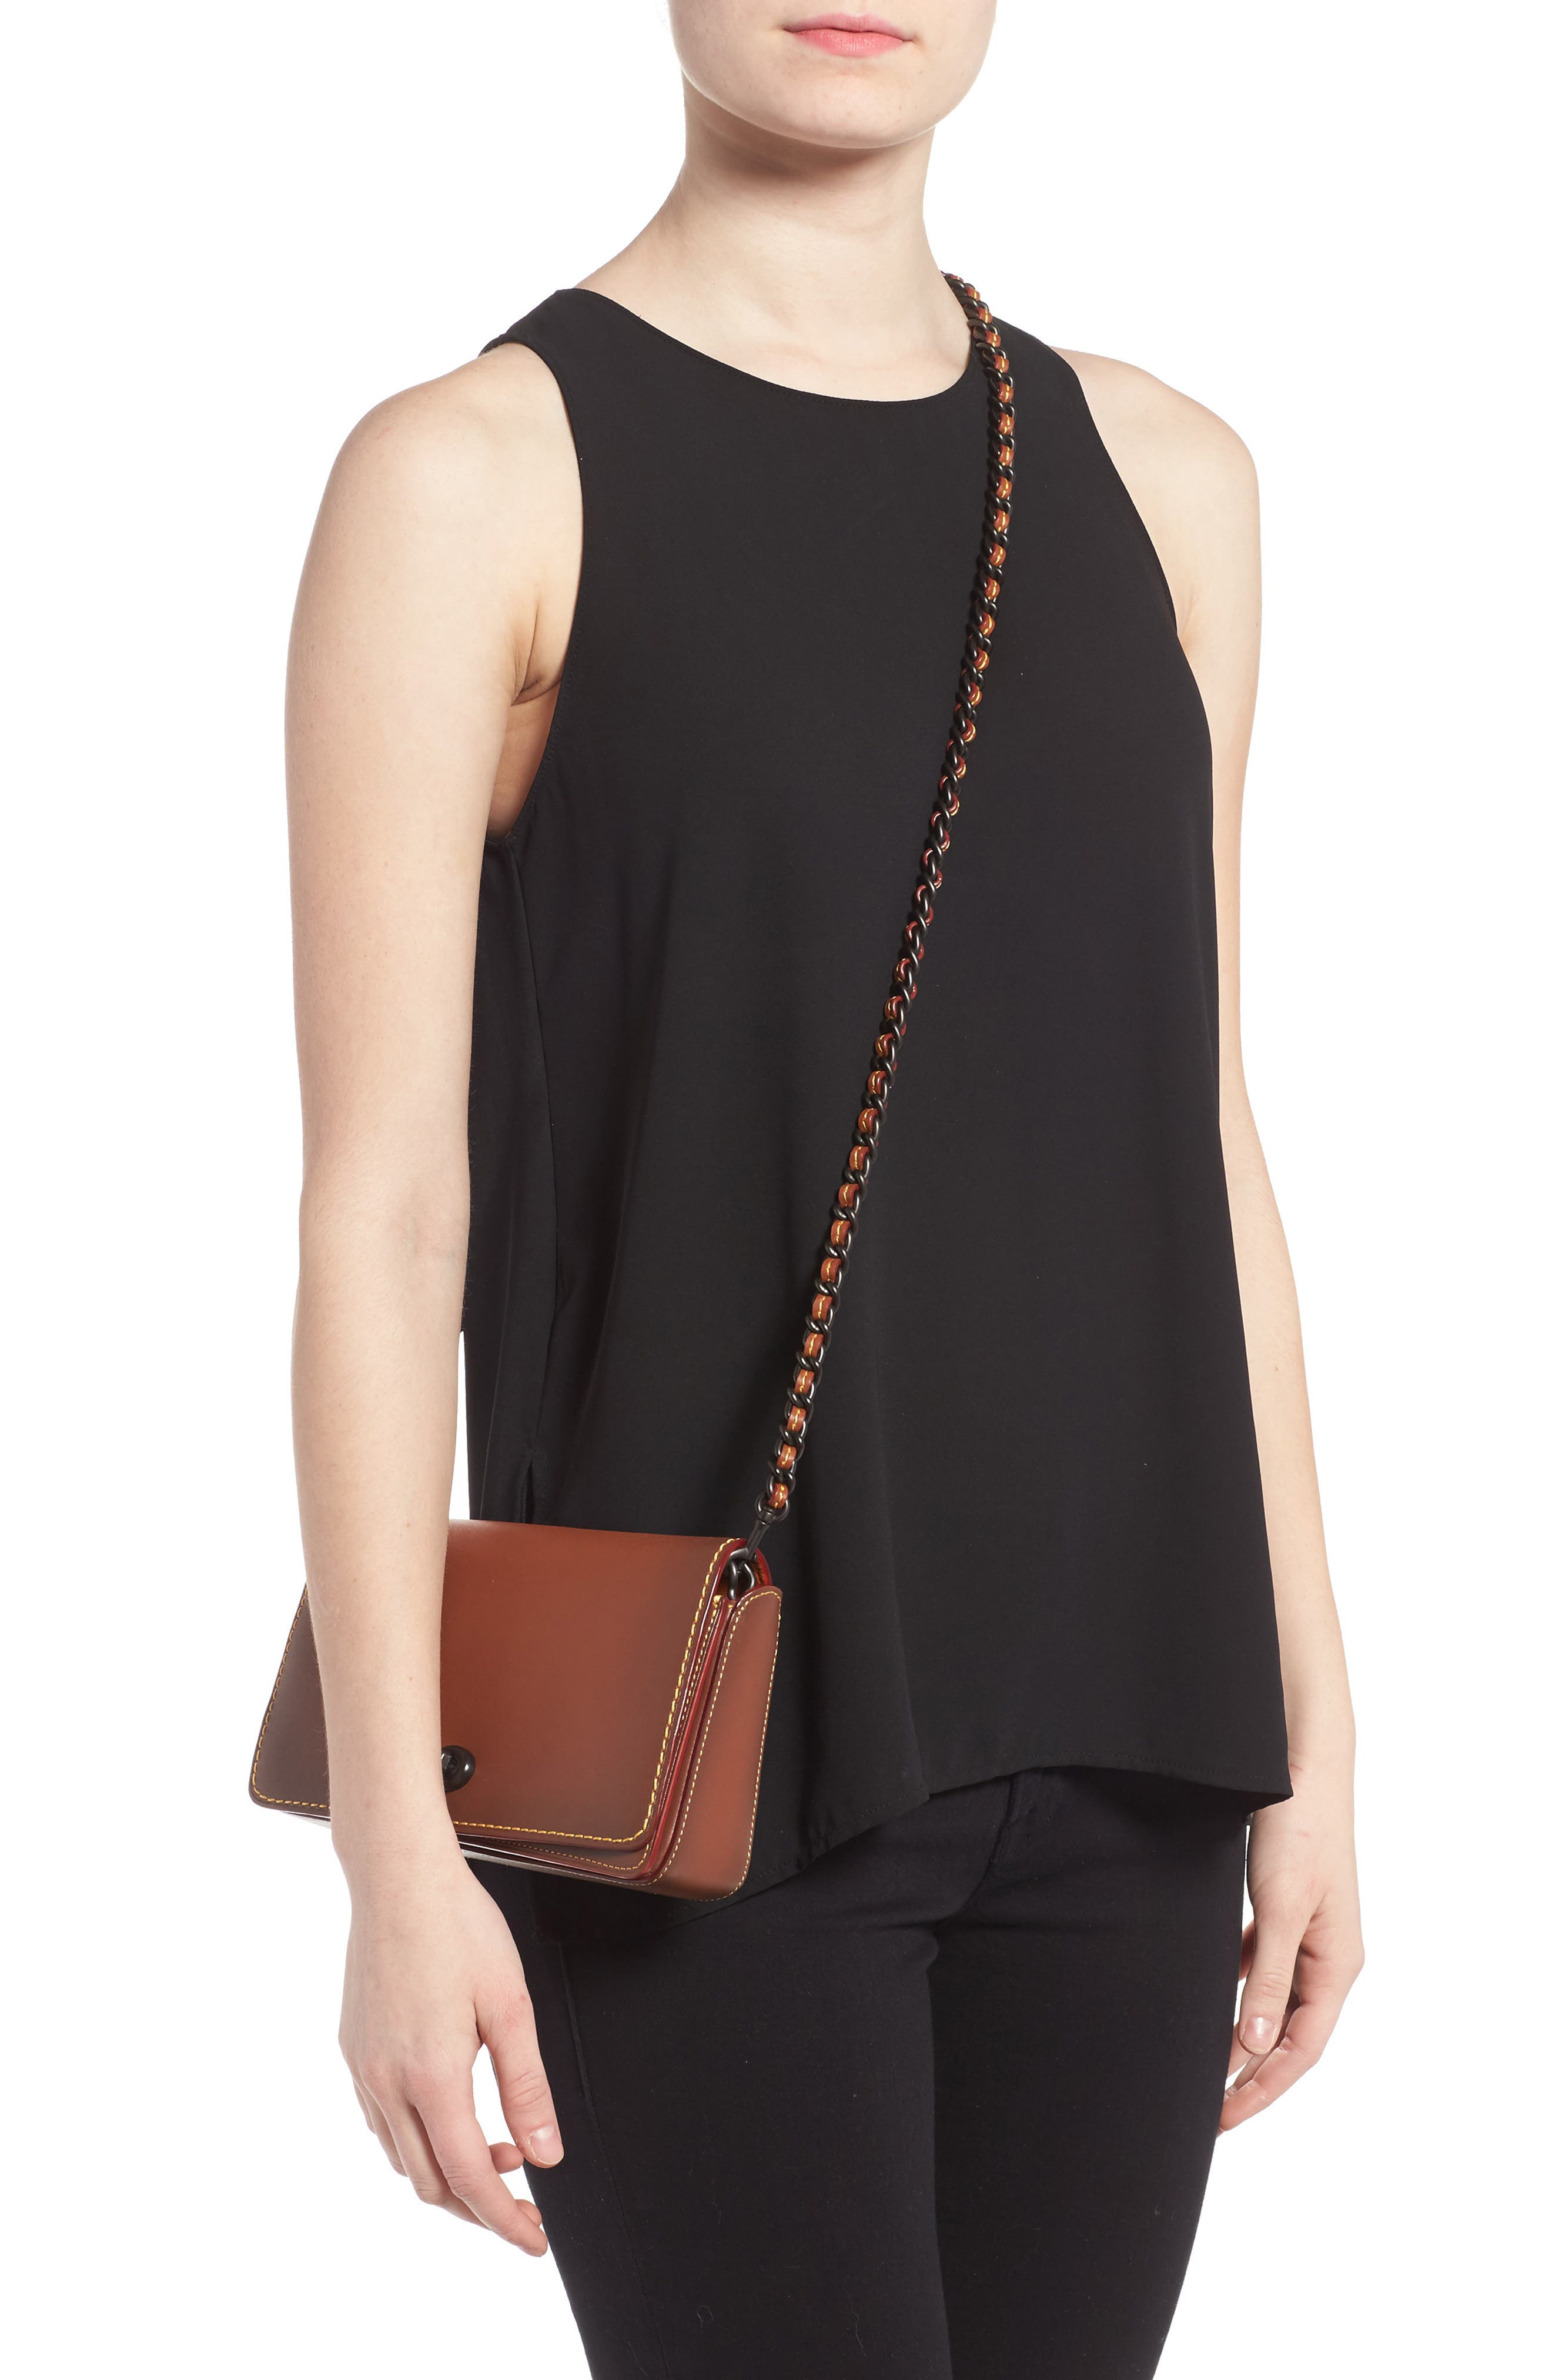 'Dinky' Leather Crossbody Bag,                             Alternate thumbnail 5, color,